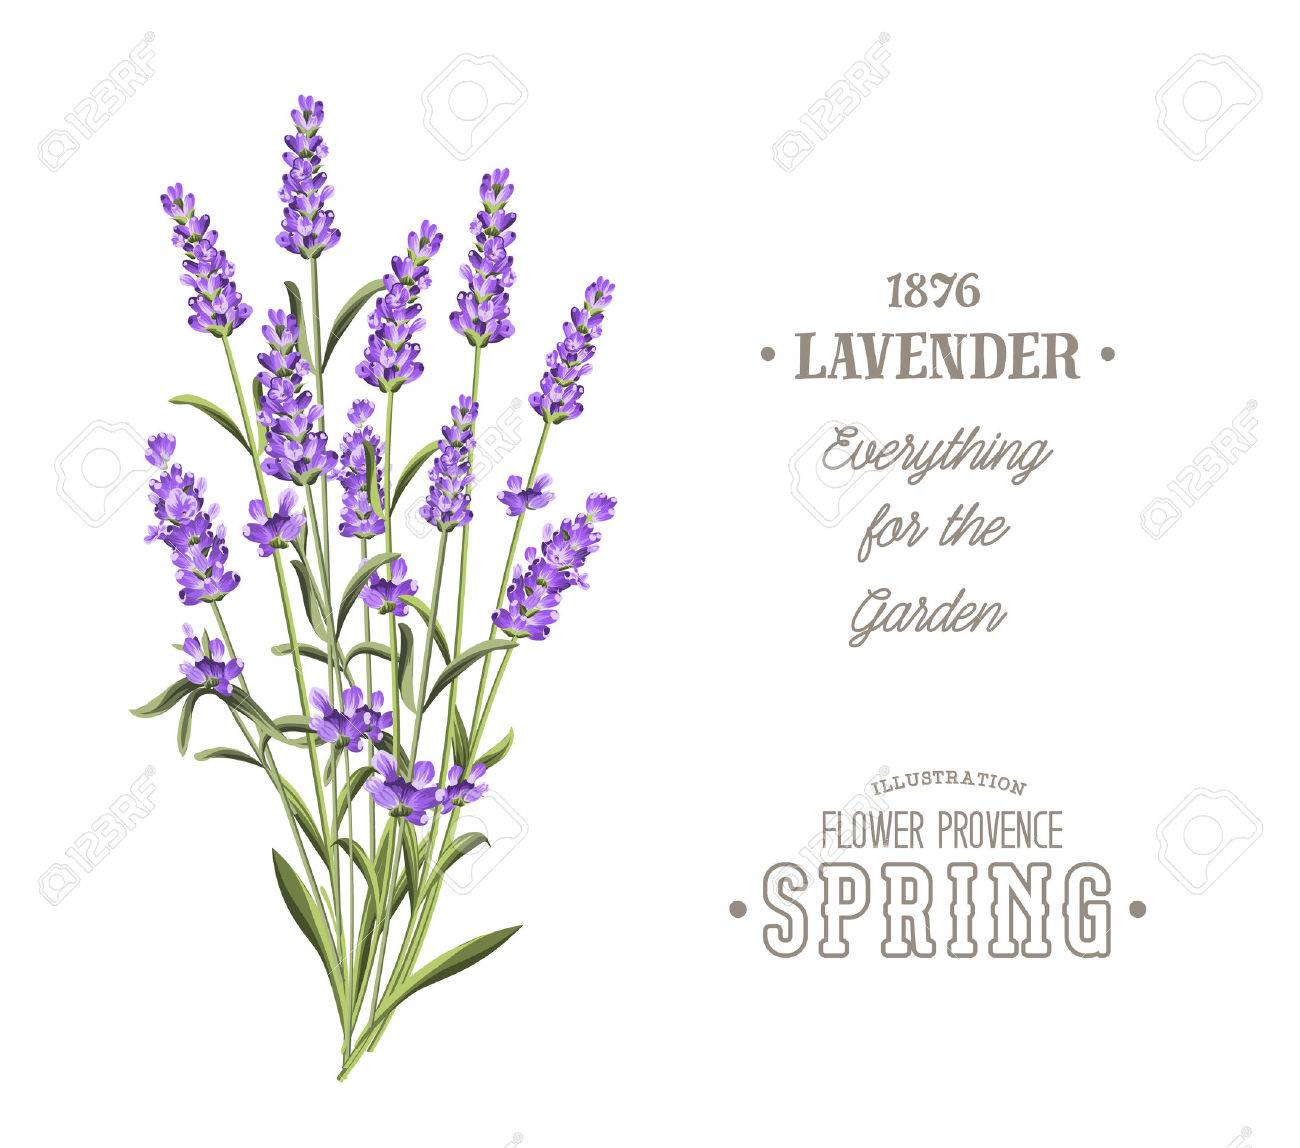 Bouquet Of Aromatic Lavender Flowers Invitation Card Template